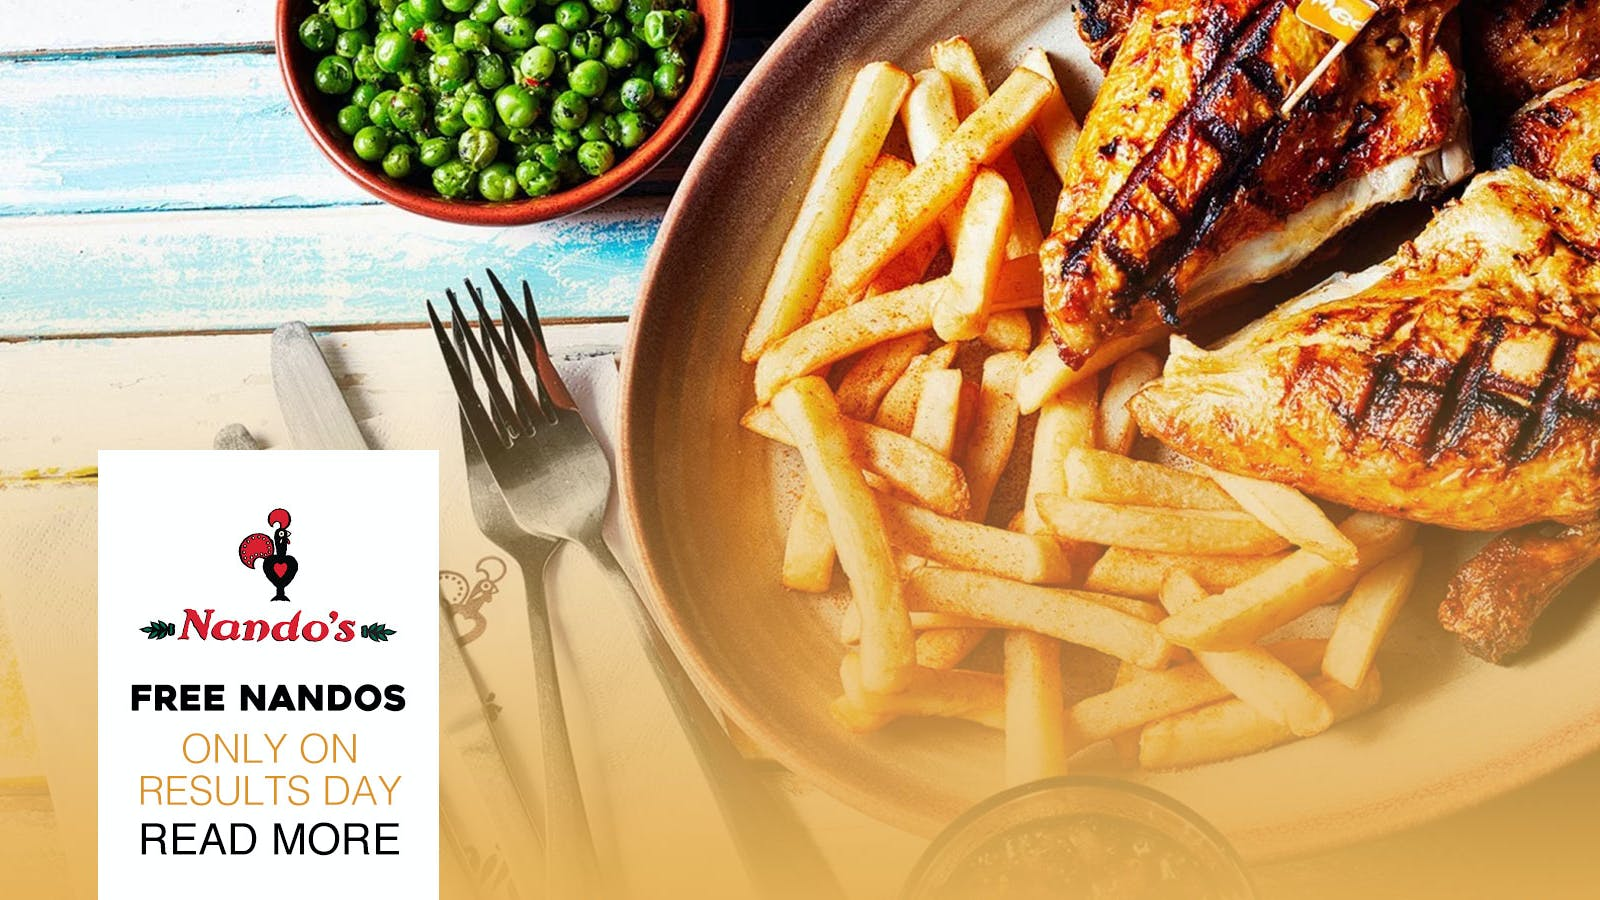 Nando's is giving out FREE food to A-Level students going to Southampton